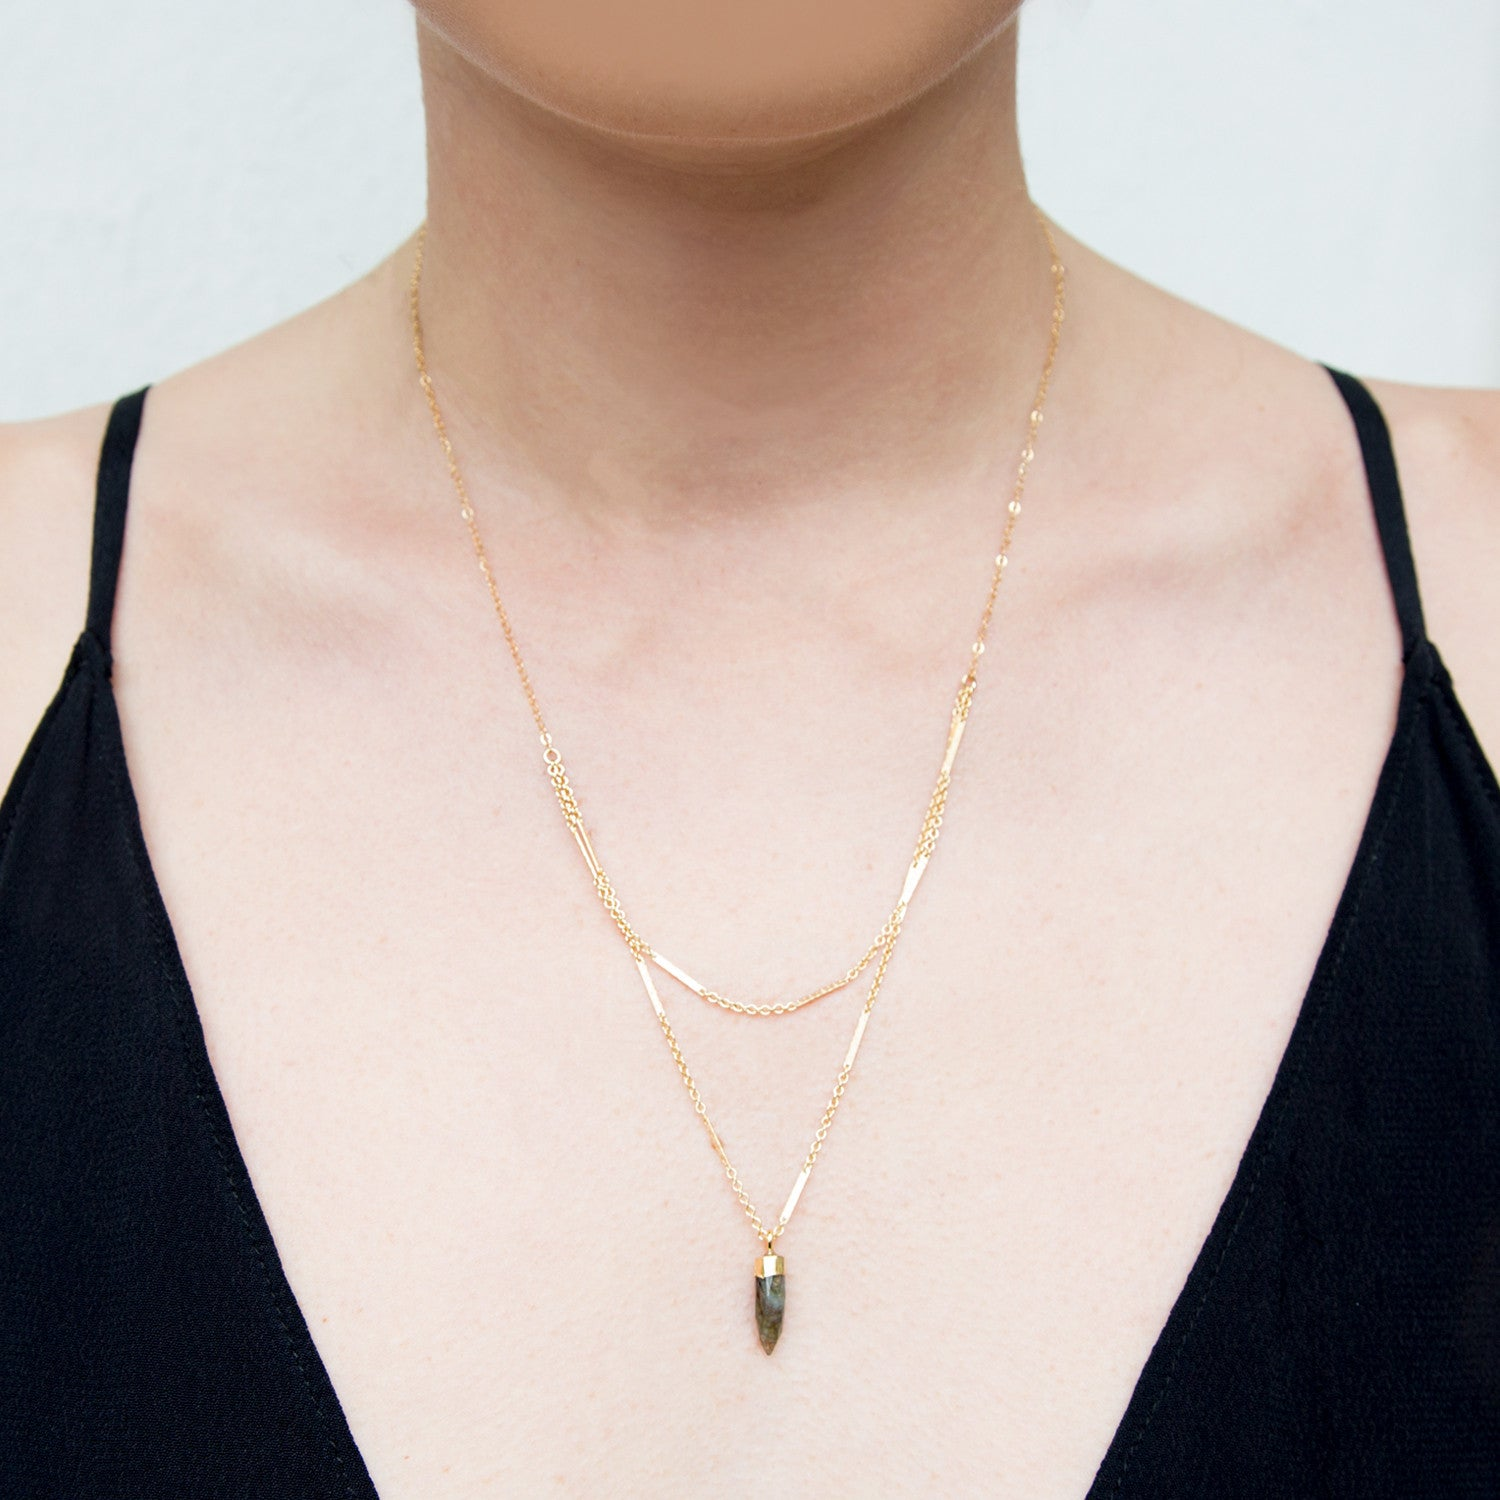 Sexy Gold Labradorite Layered Necklace